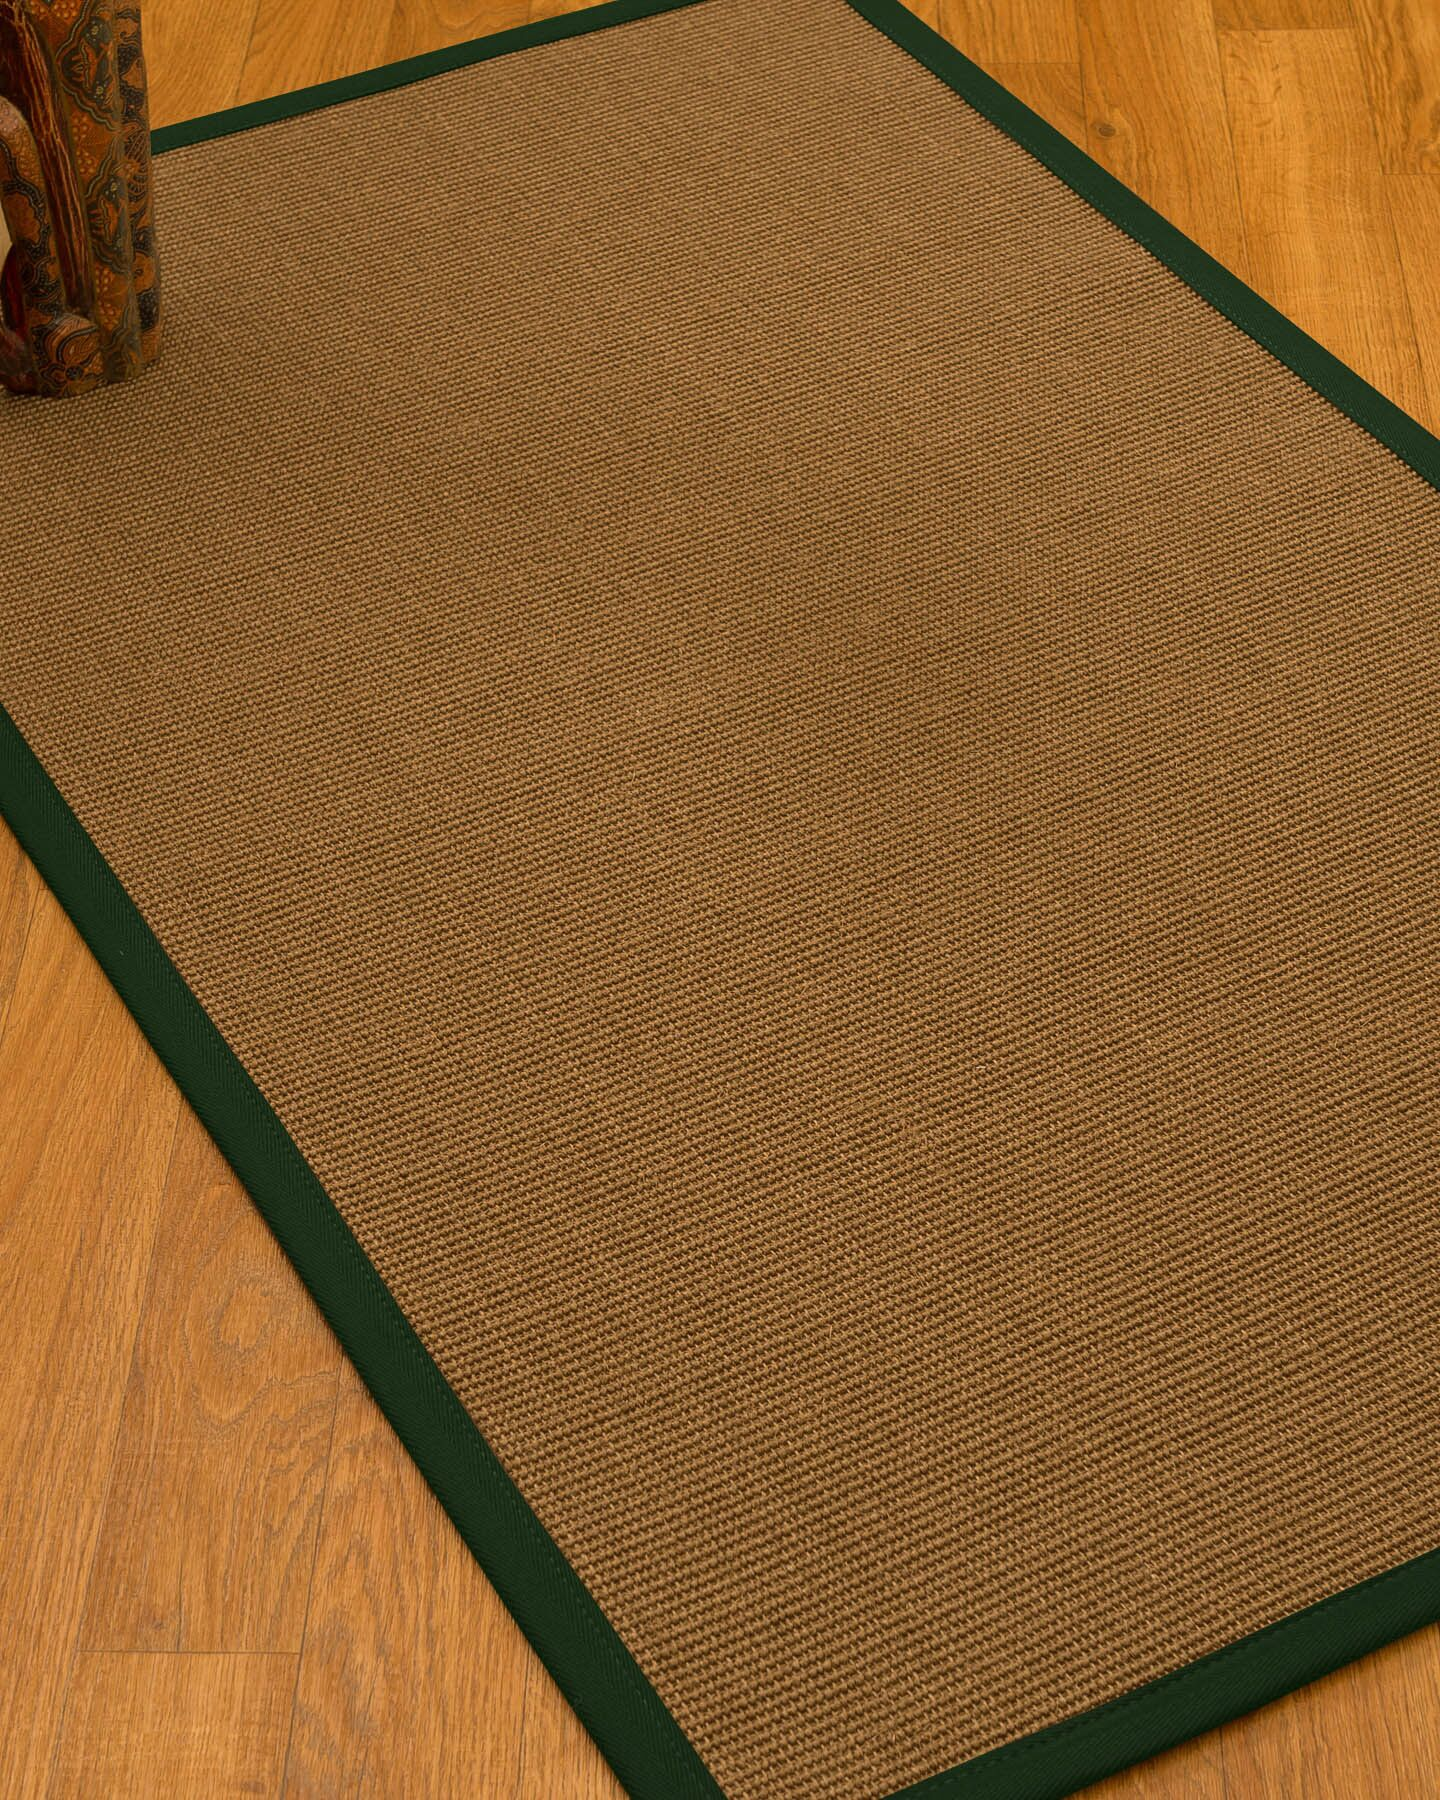 Huntwood Border Hand-Woven Brown/Moss Area Rug Rug Pad Included: No, Rug Size: Rectangle 3' x 5'